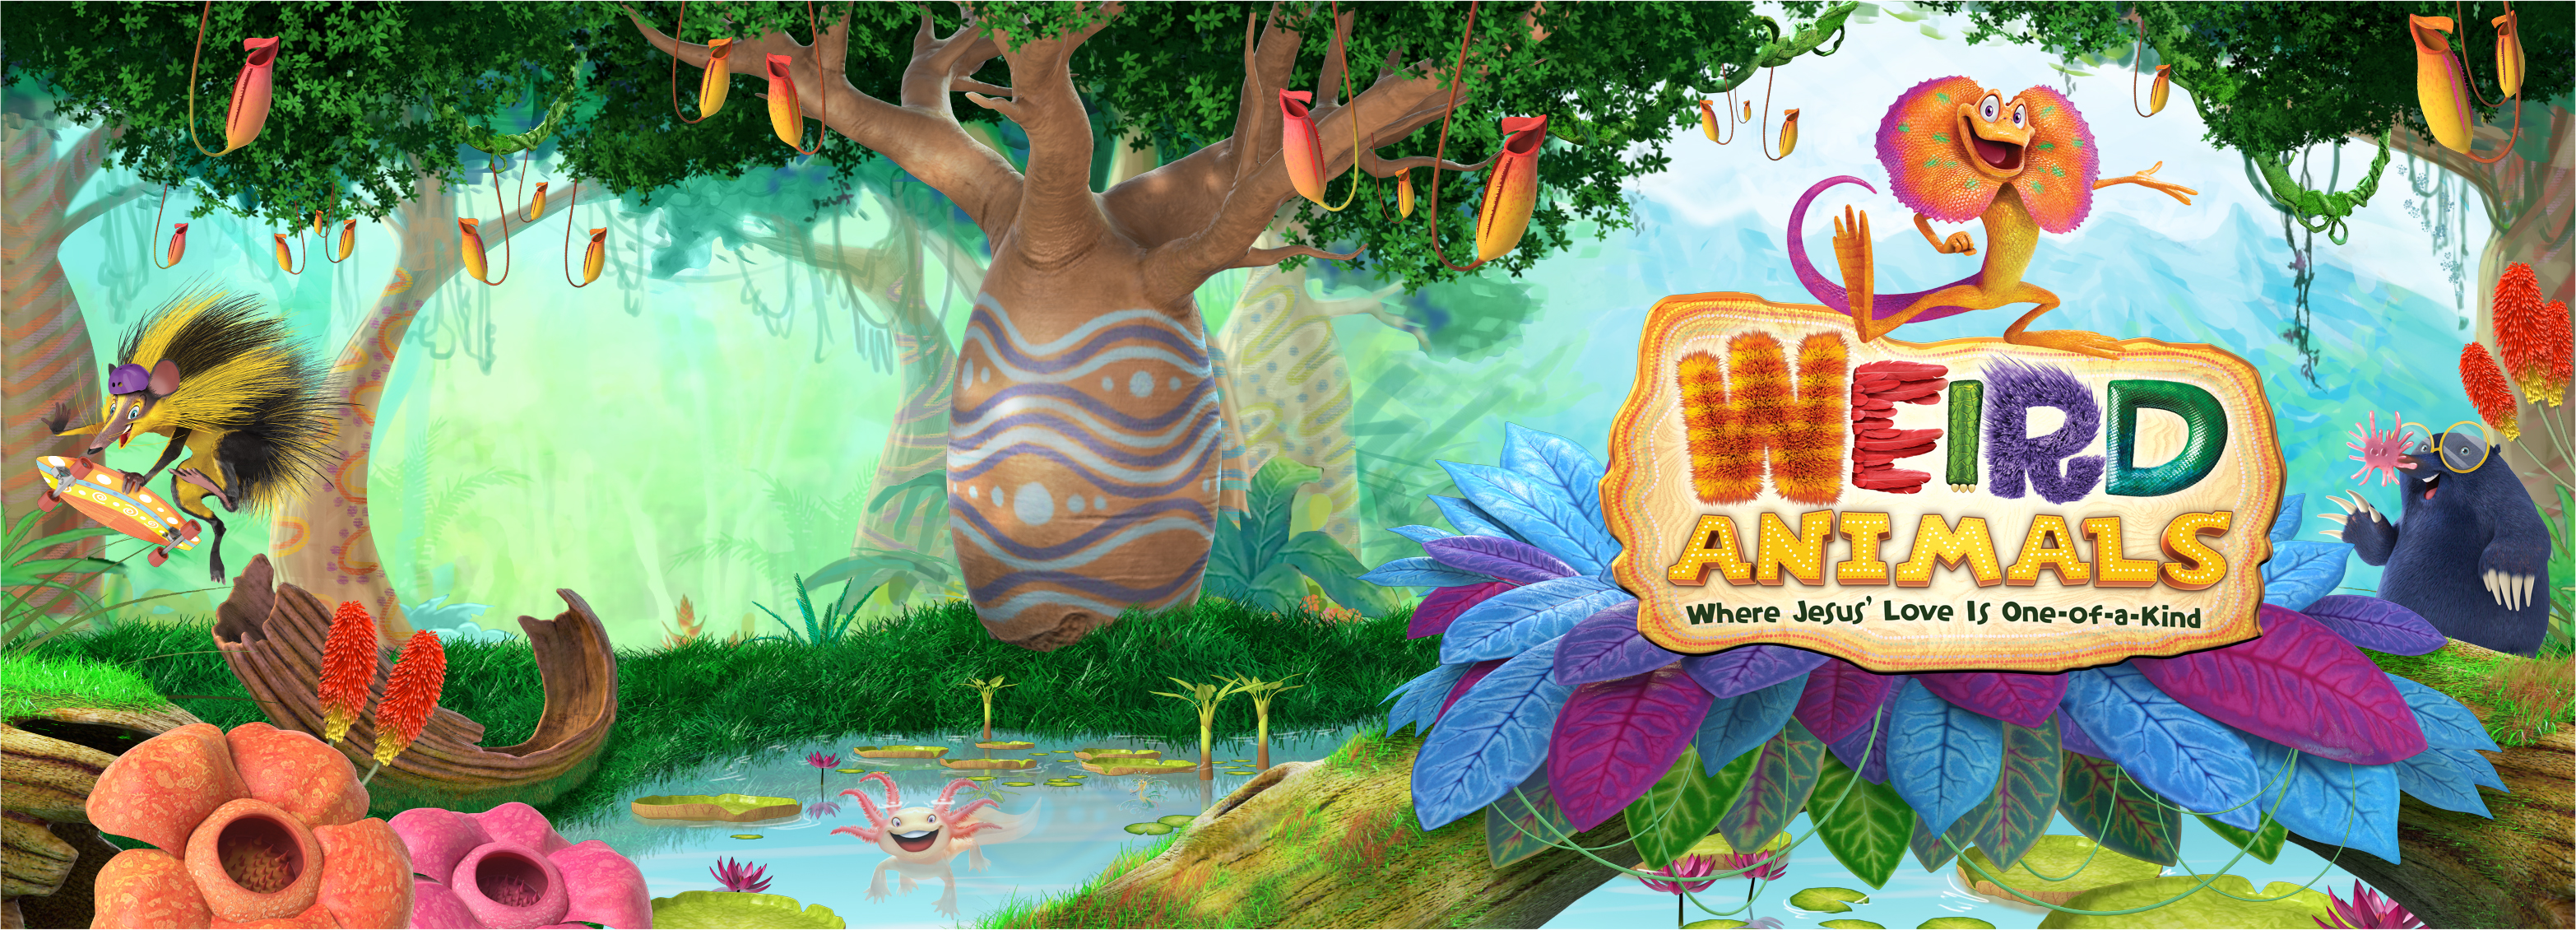 . PlusPng.com weird-animals-vbs-scene-art.jpg. - Weird Animals Vbs PNG